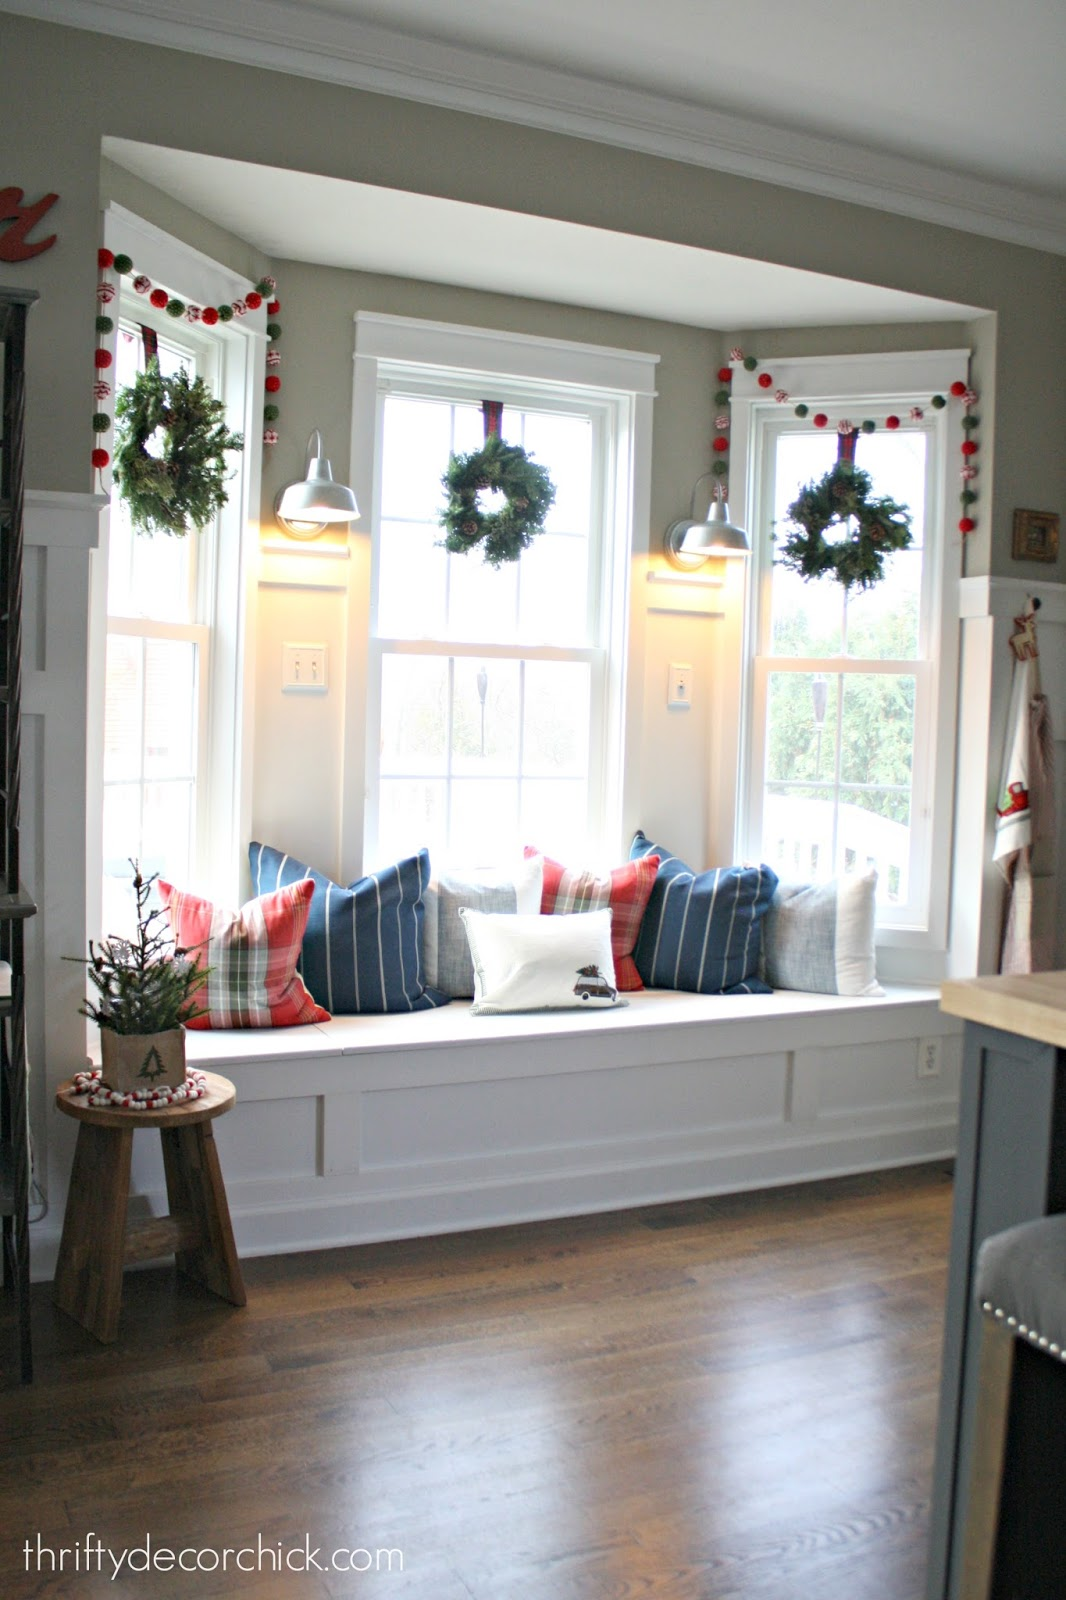 Last Minute Christmas Home Tour from Thrifty Decor Chick